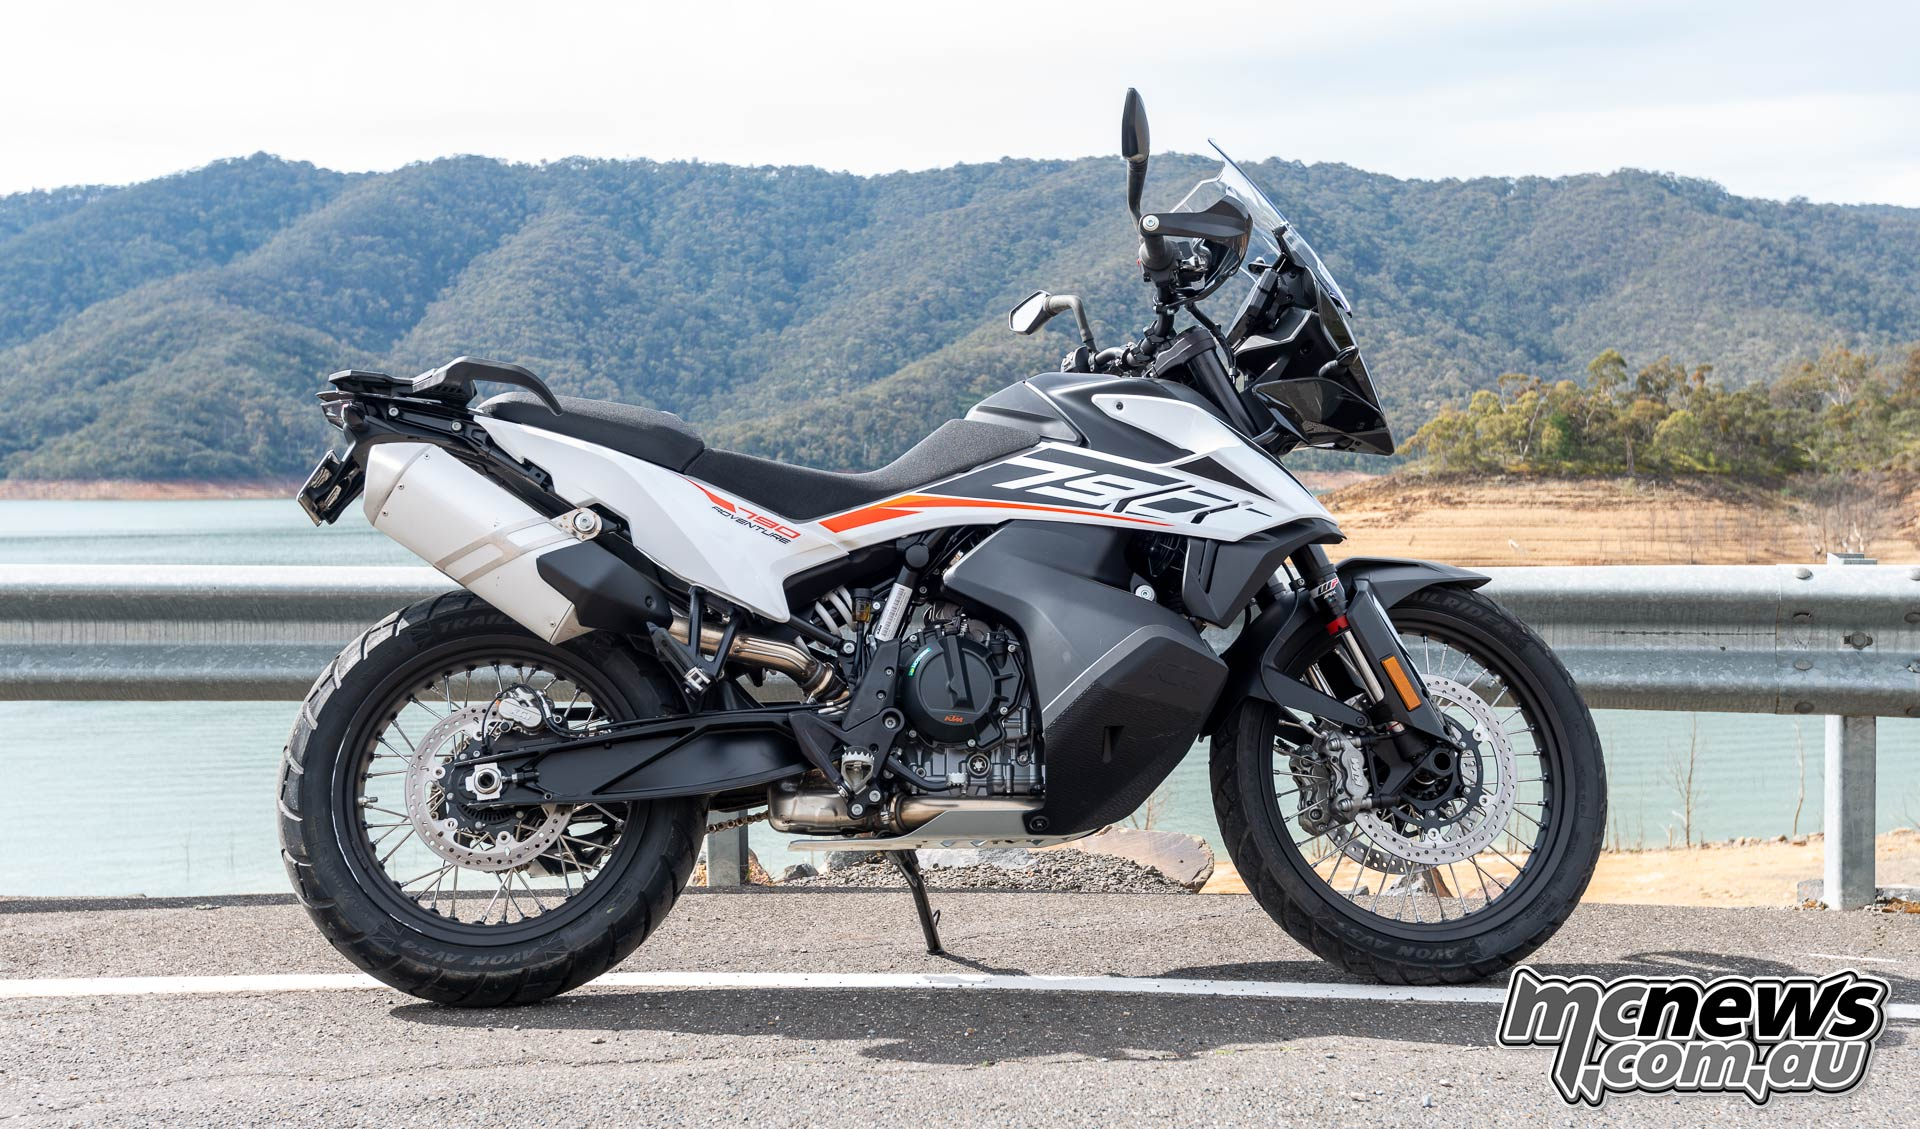 2019 Ktm 790 Adventure Review Motorcycle Test Mcnews